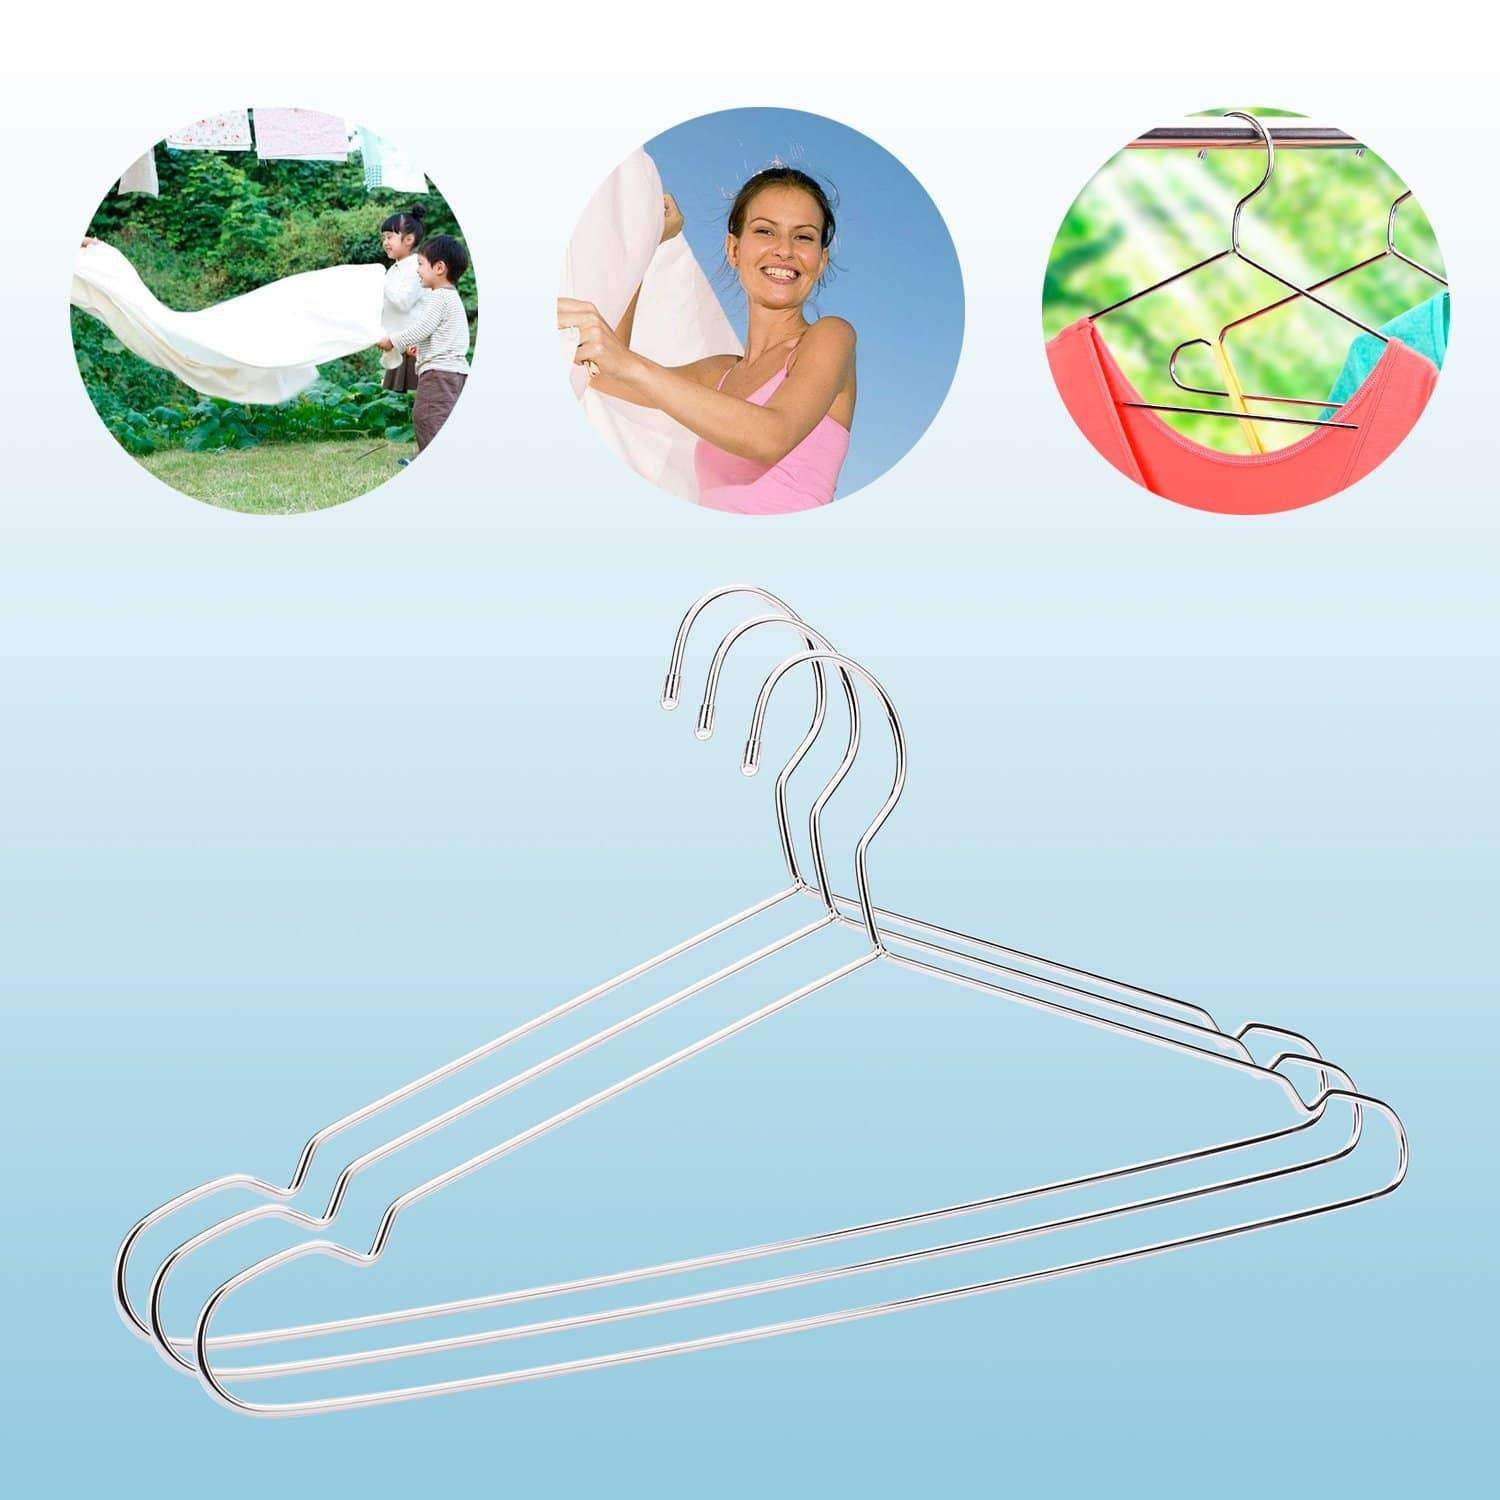 Select nice jetdio 17 7 stainless steel strong metal wire hangers clothes hangers coat hanger standard suit hangers everyday use hangers 30 pack